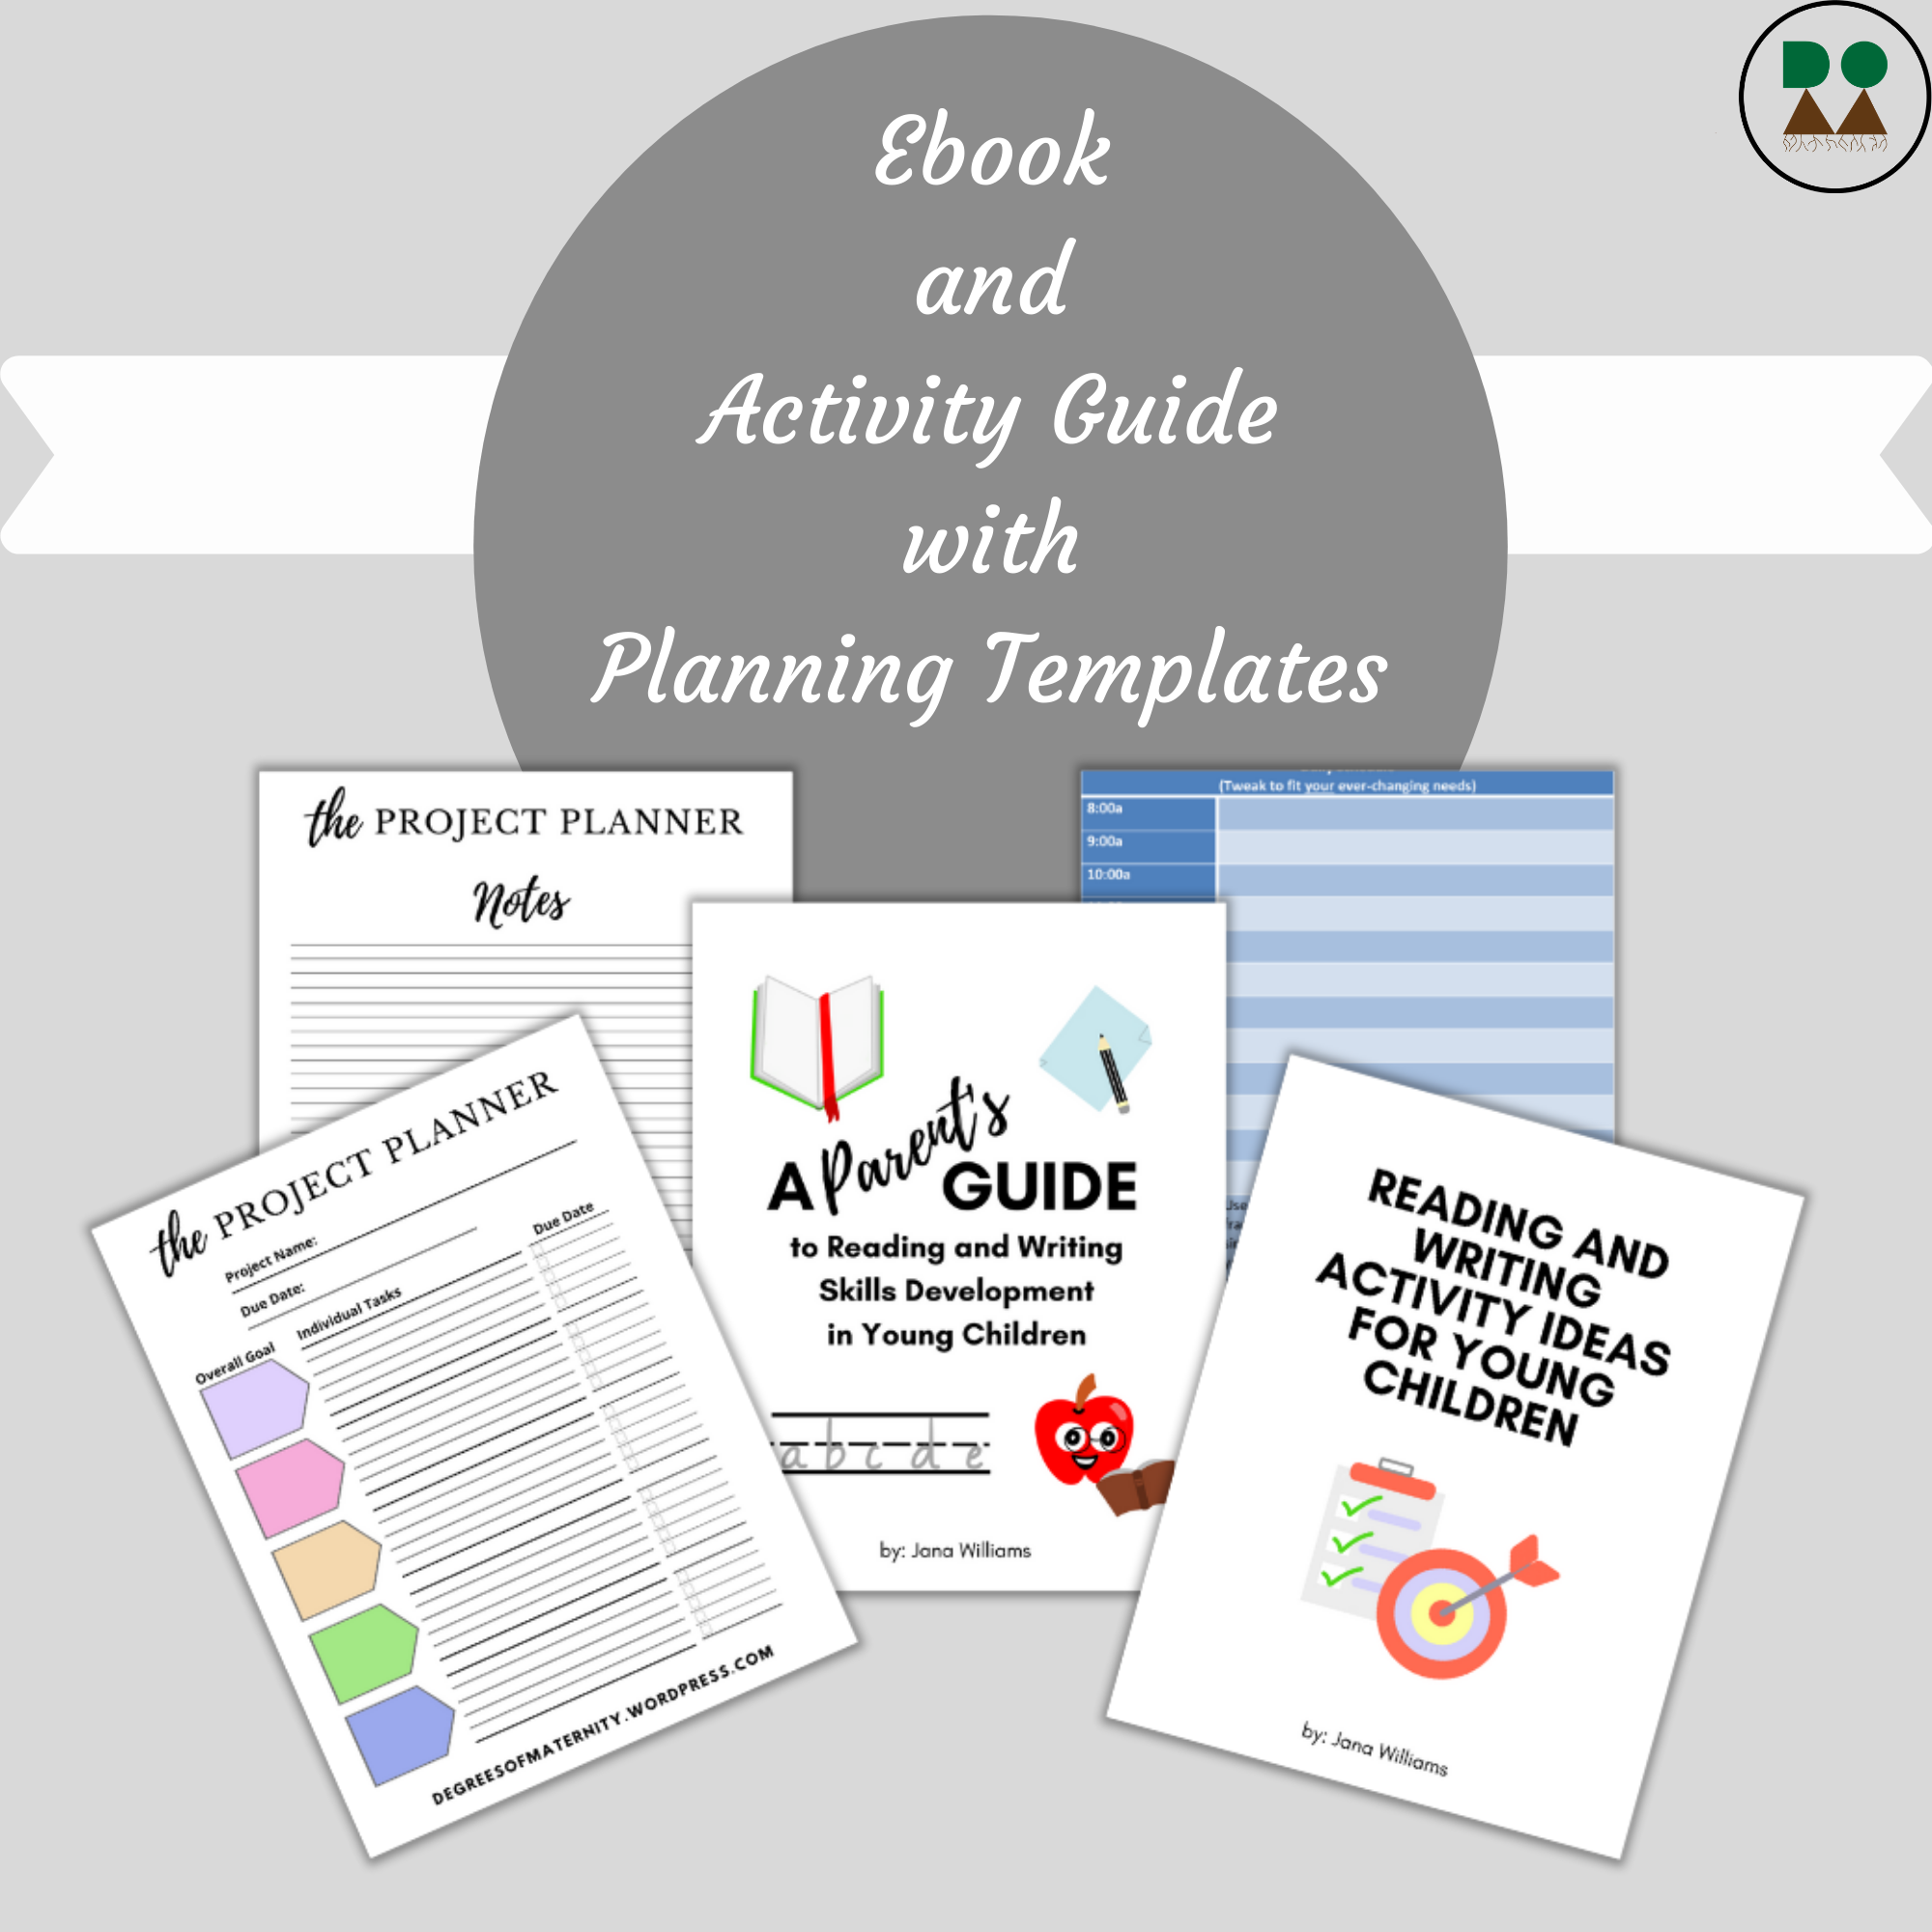 ebook-and-activity-guide-with-planning-templates-1